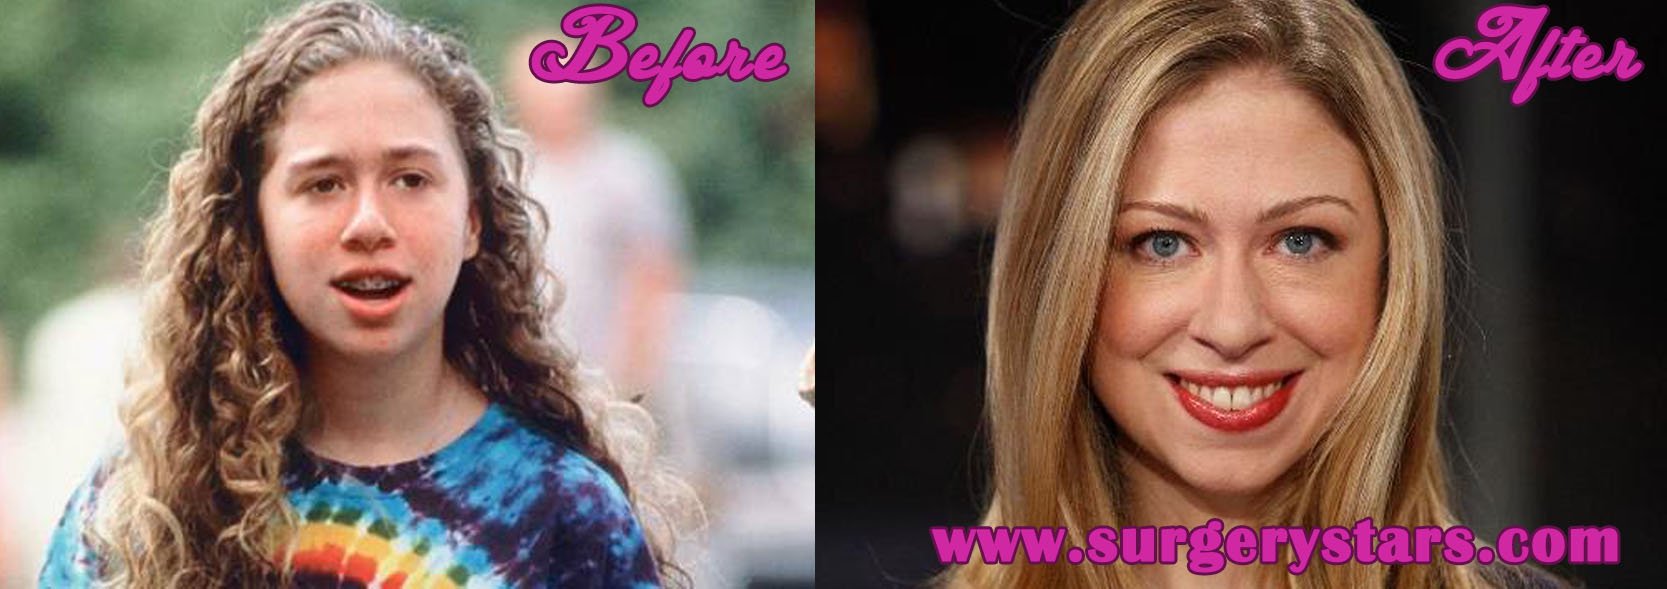 Chelsea clinton plastic surgery before and after pictures